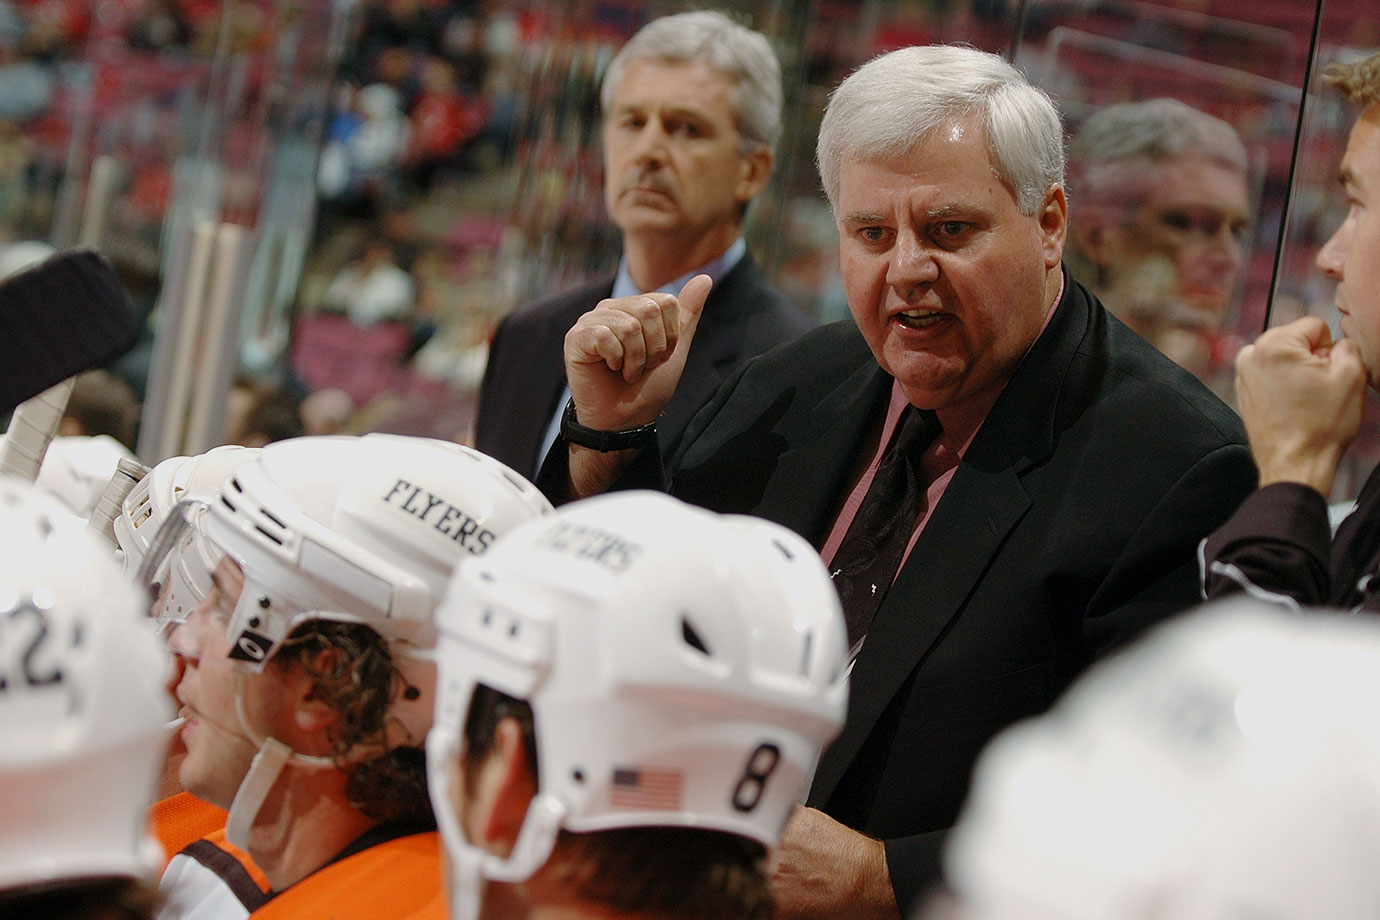 """The Flyers' worst start in 17 years (1-6-1), including the worst loss in franchise history (9-1 to Buffalo), triggered a sudden housecleaning. Hitchcock, their fourth-year coach, was handed his walking papers a little more than a month after he'd signed a contract extension. Longtime GM Bobby Clarke stepped down, citing burnout. """"I no longer wanted to make the decisions general managers have to make,"""" he said. Respective successors John Stevens and Paul Holmgren fared no better. The Flyers were on the golf course at the end of the regular season."""